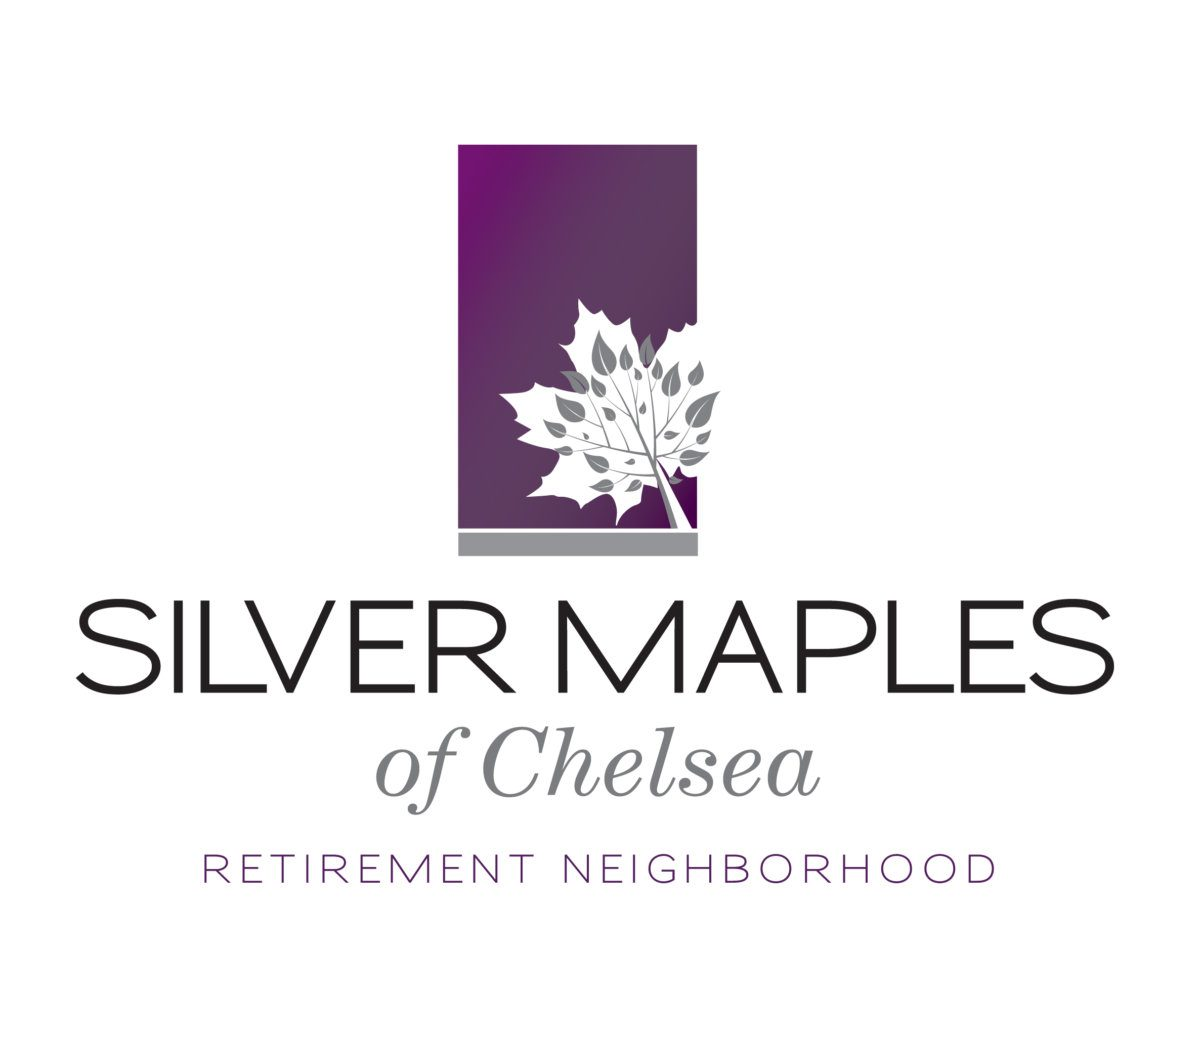 Silver Maples of Chelsea Retirement Neighborhood